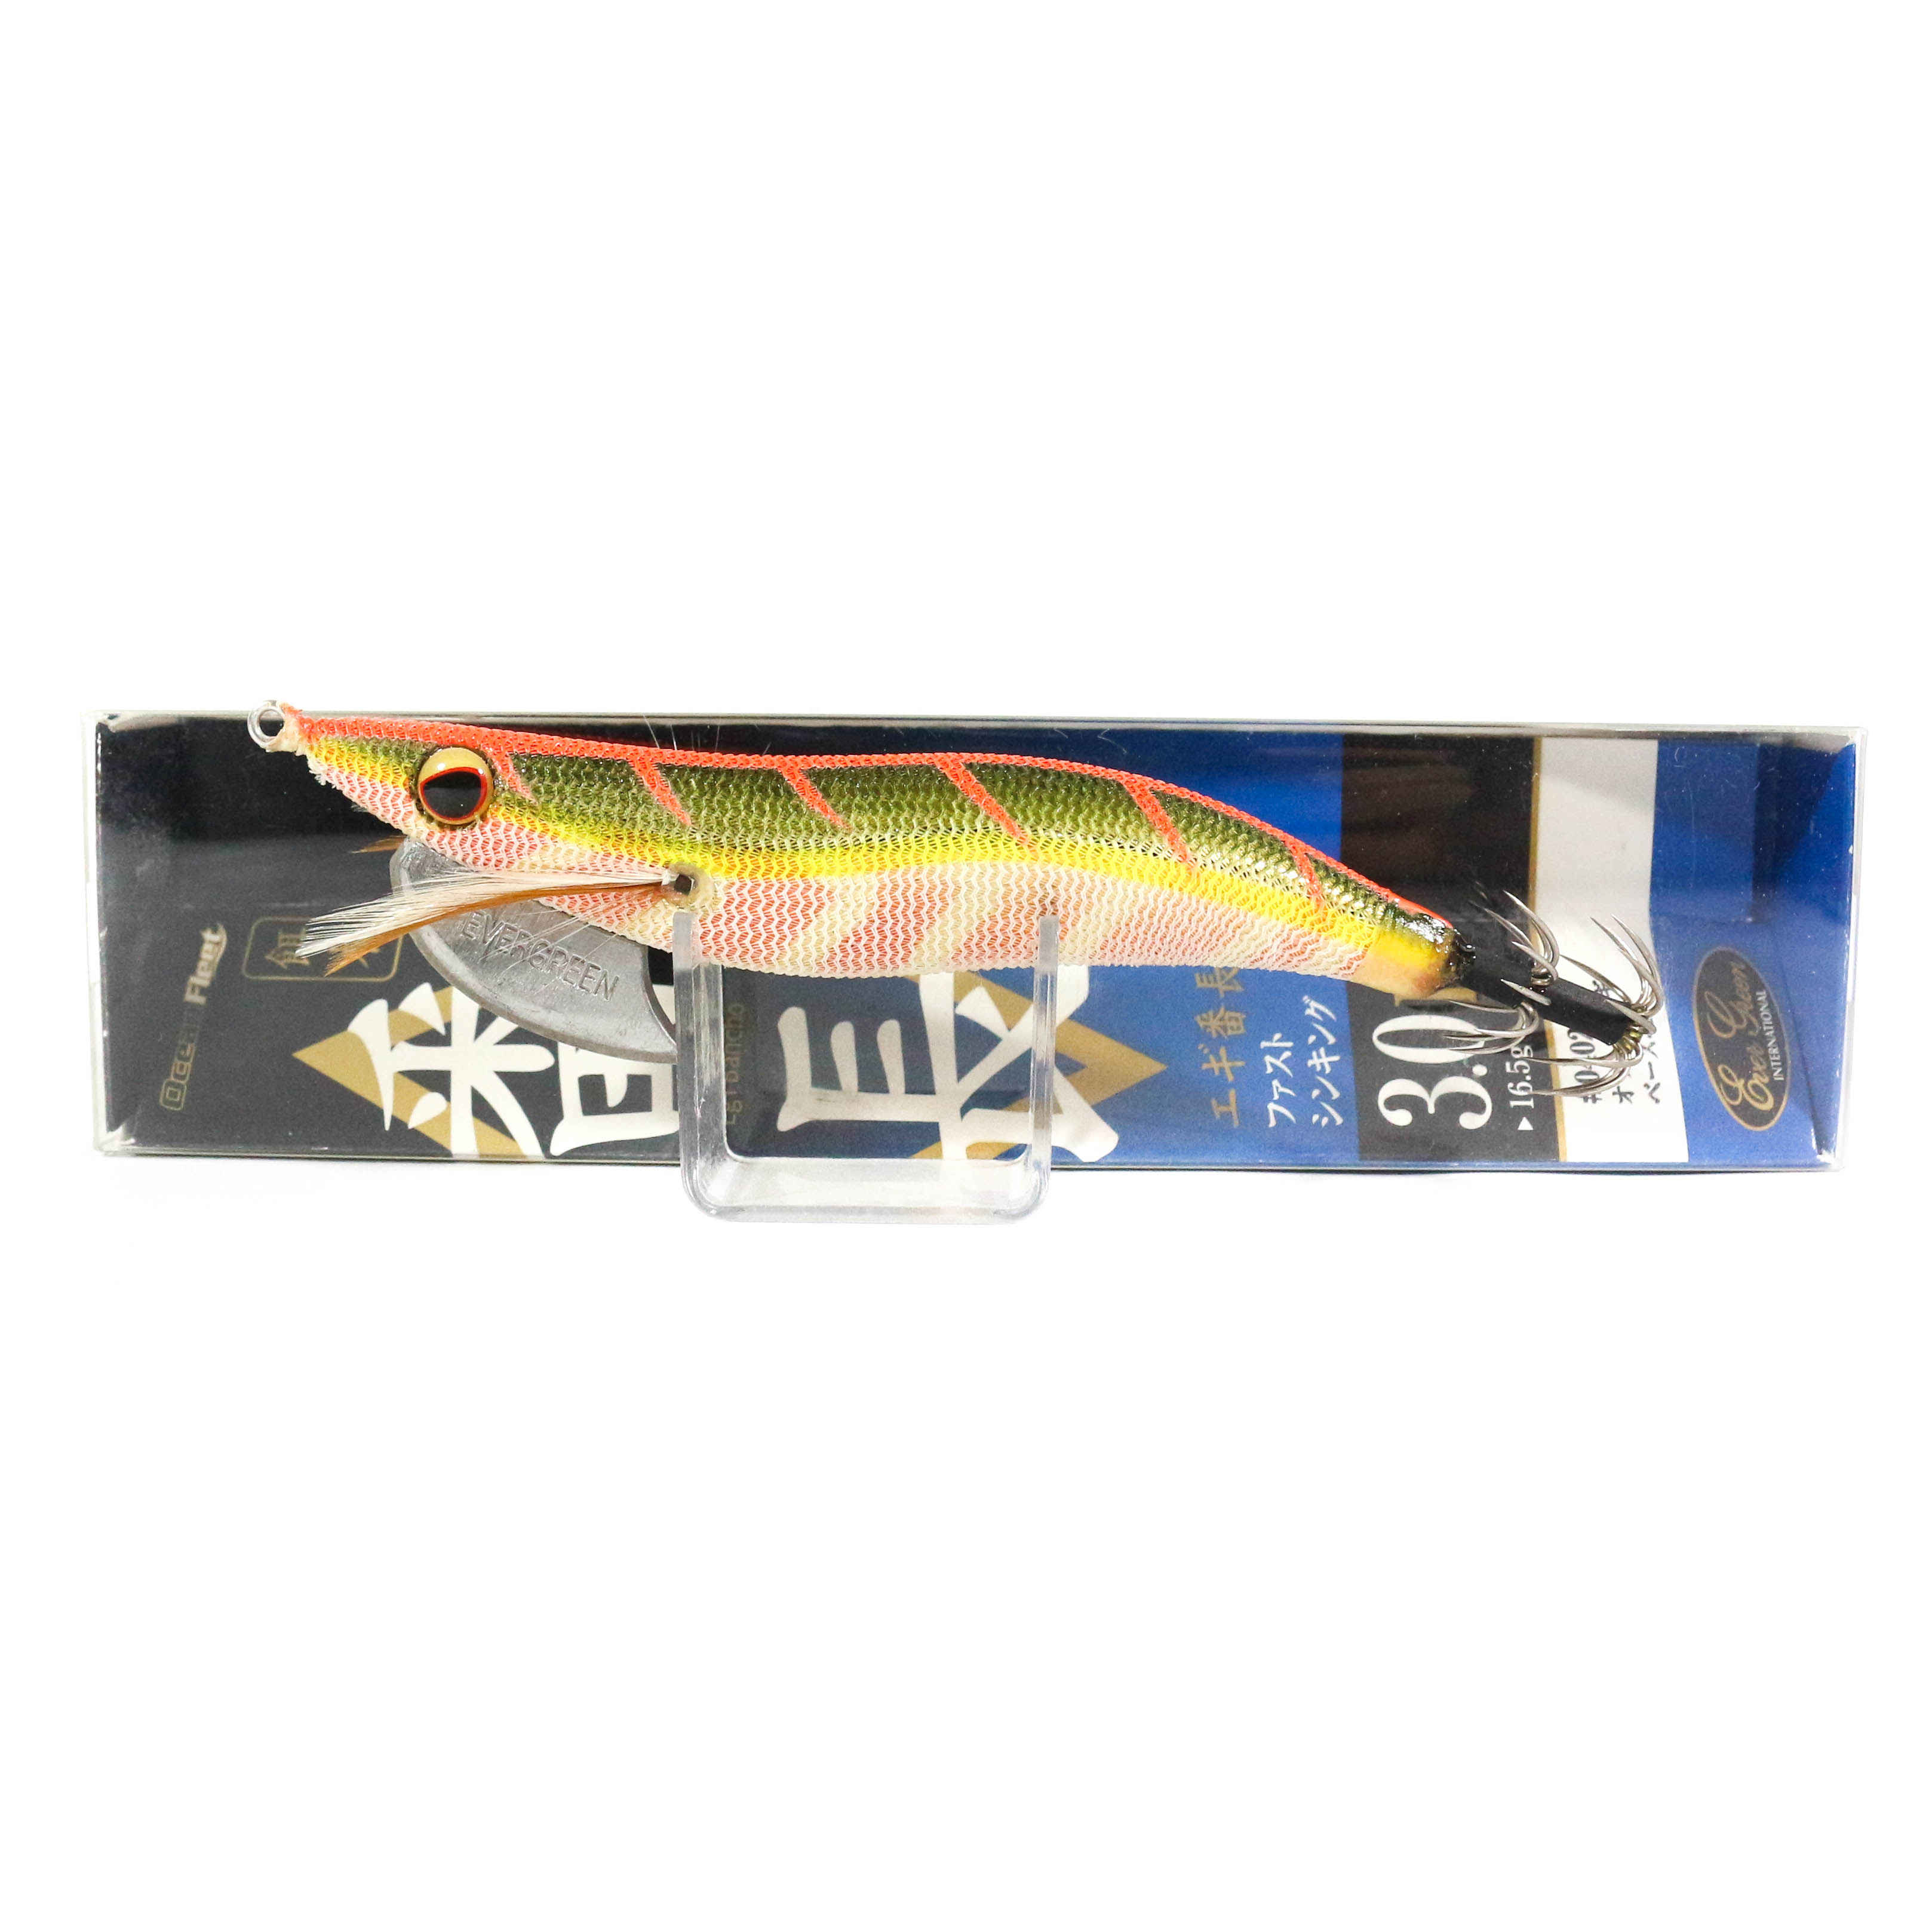 Evergreen Ocean Fleet Custom Squid Jig Lure 3.0D 0402G (3405)